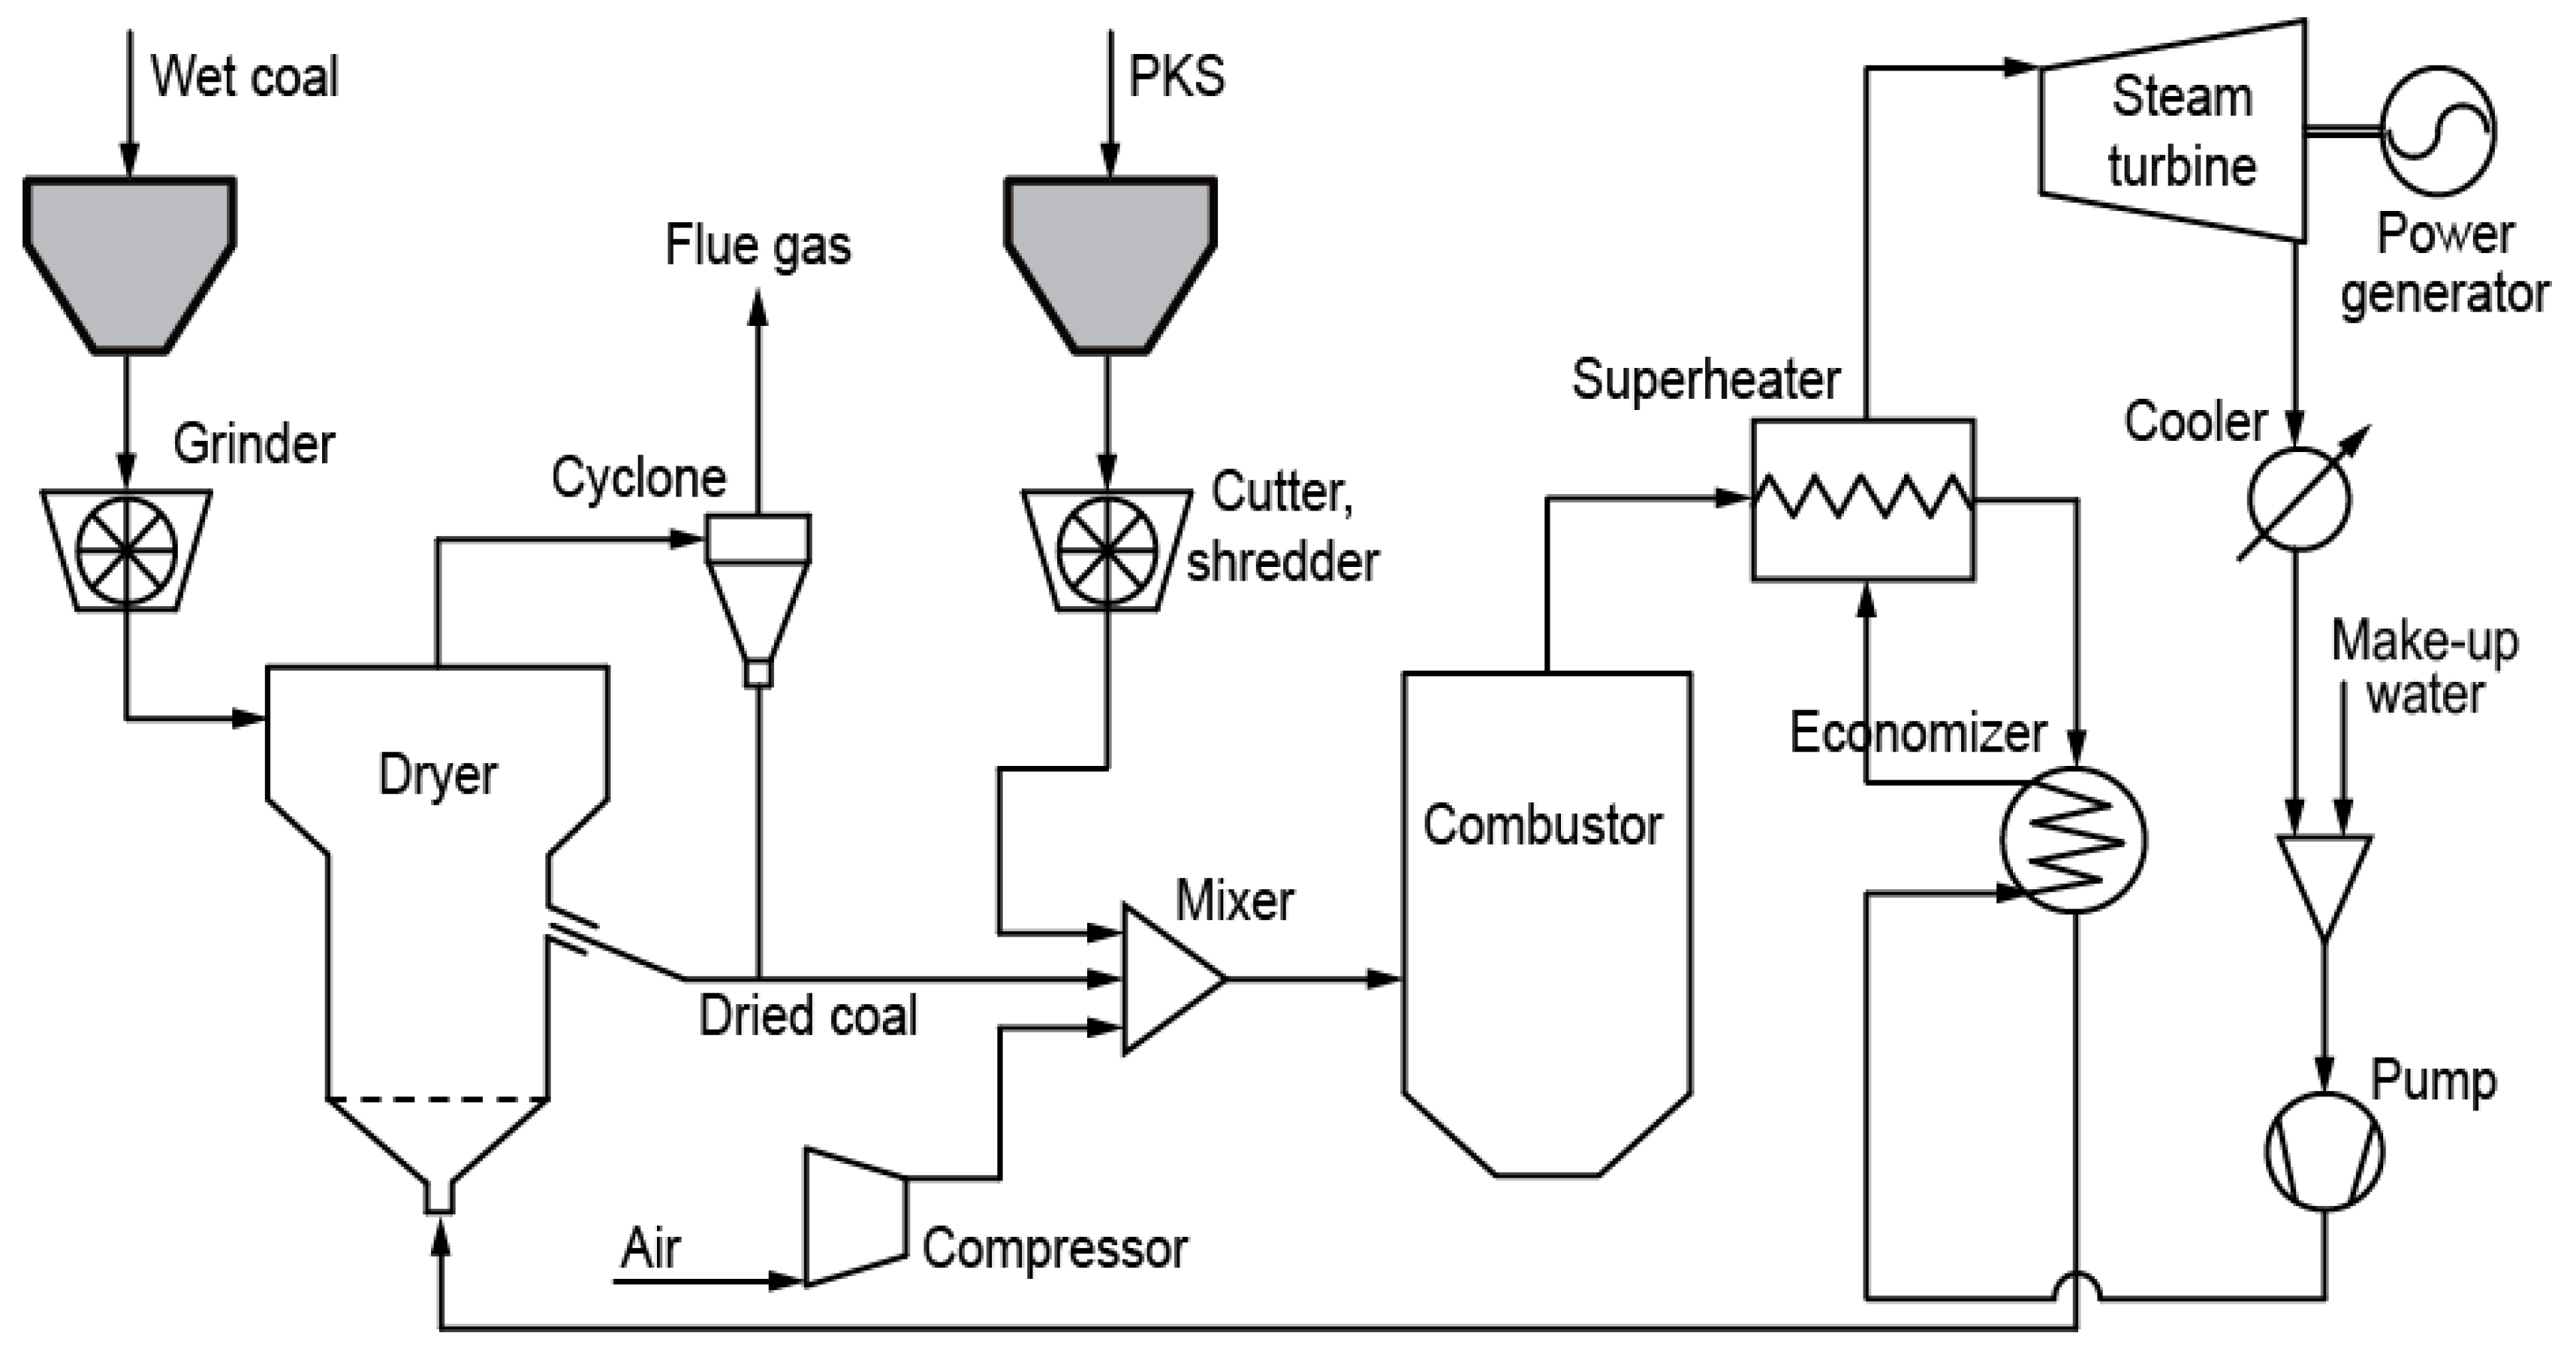 energies 09 00137 g001 energies free full text computational fluid dynamic analysis Refrigeration Compressor Wiring Diagram at couponss.co